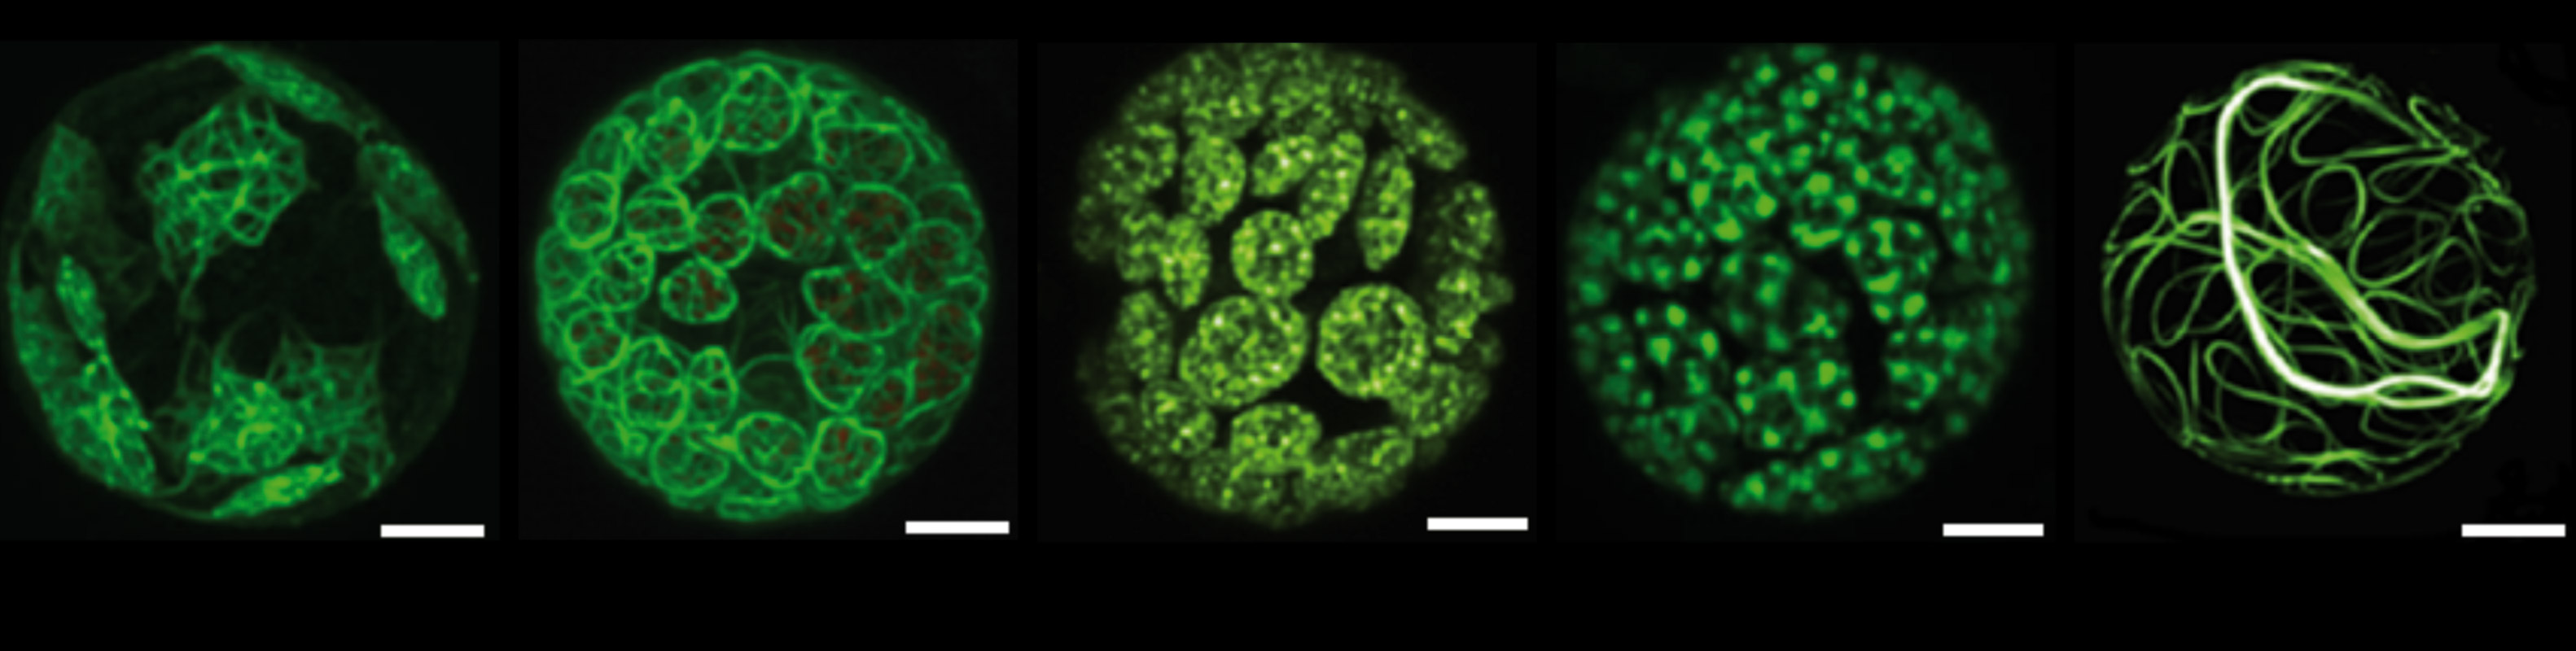 Fig.5: GFP-labelled FtsZ-isoforms show complex network patterns in moss chloroplasts.